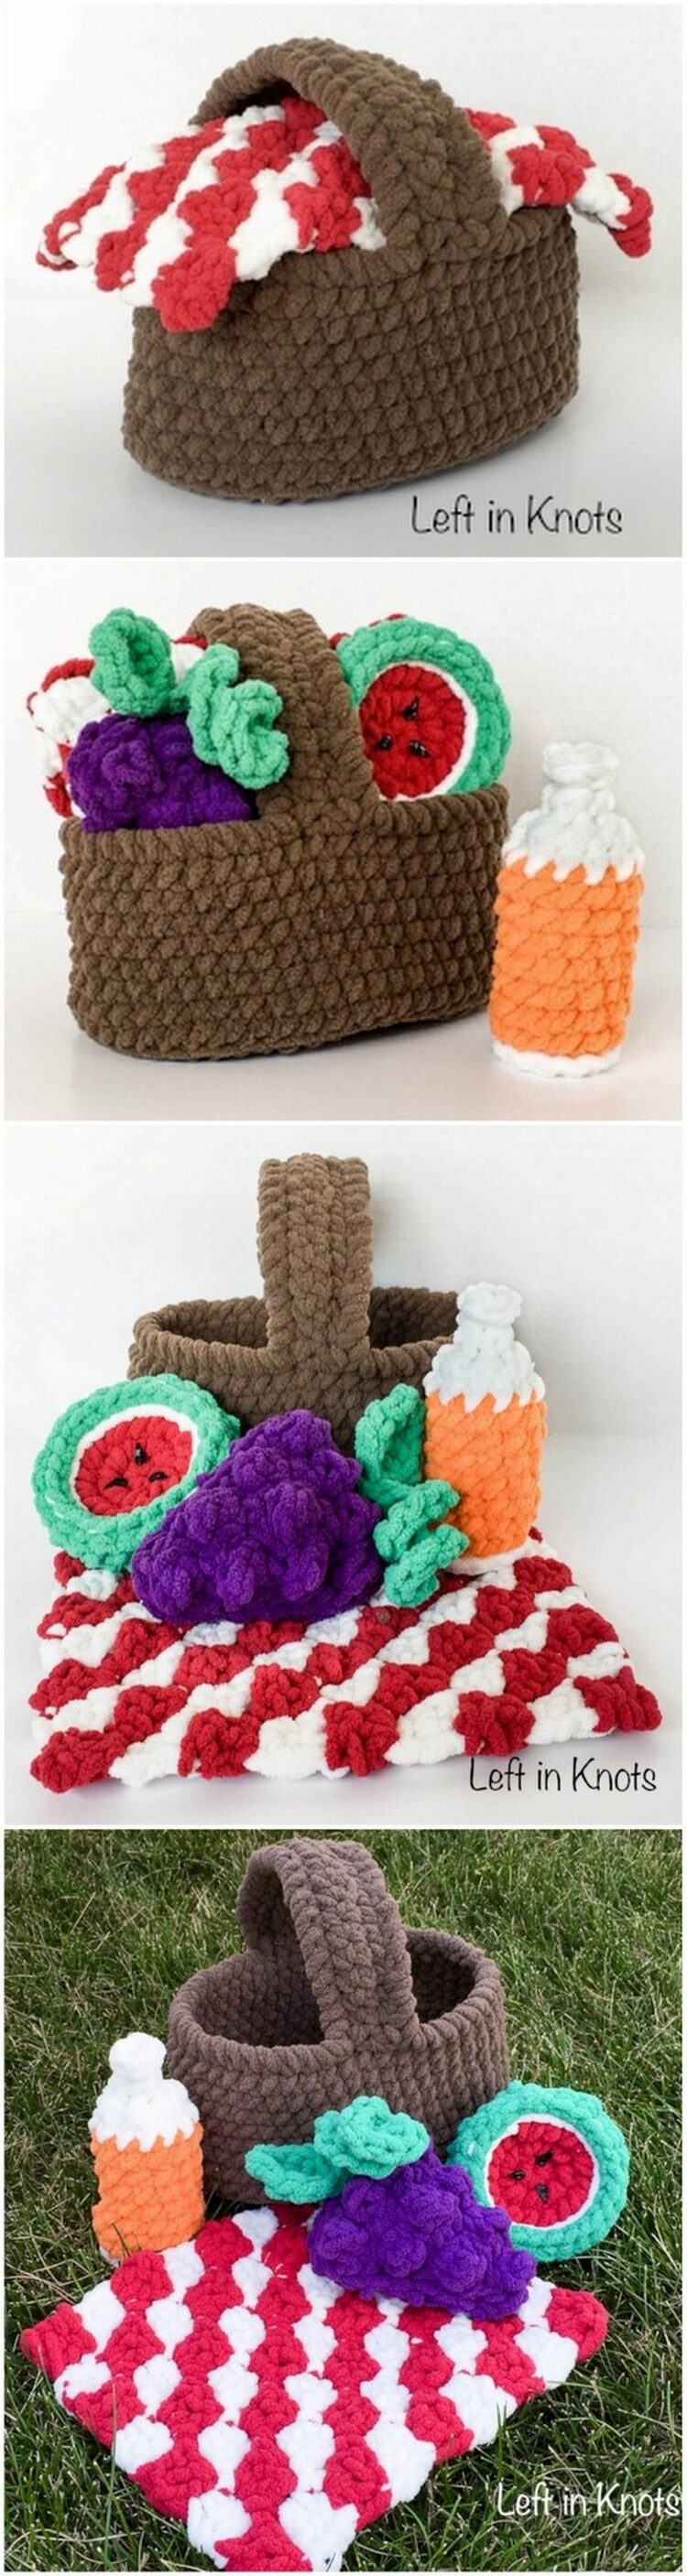 Crochet Basket Pattern (63)